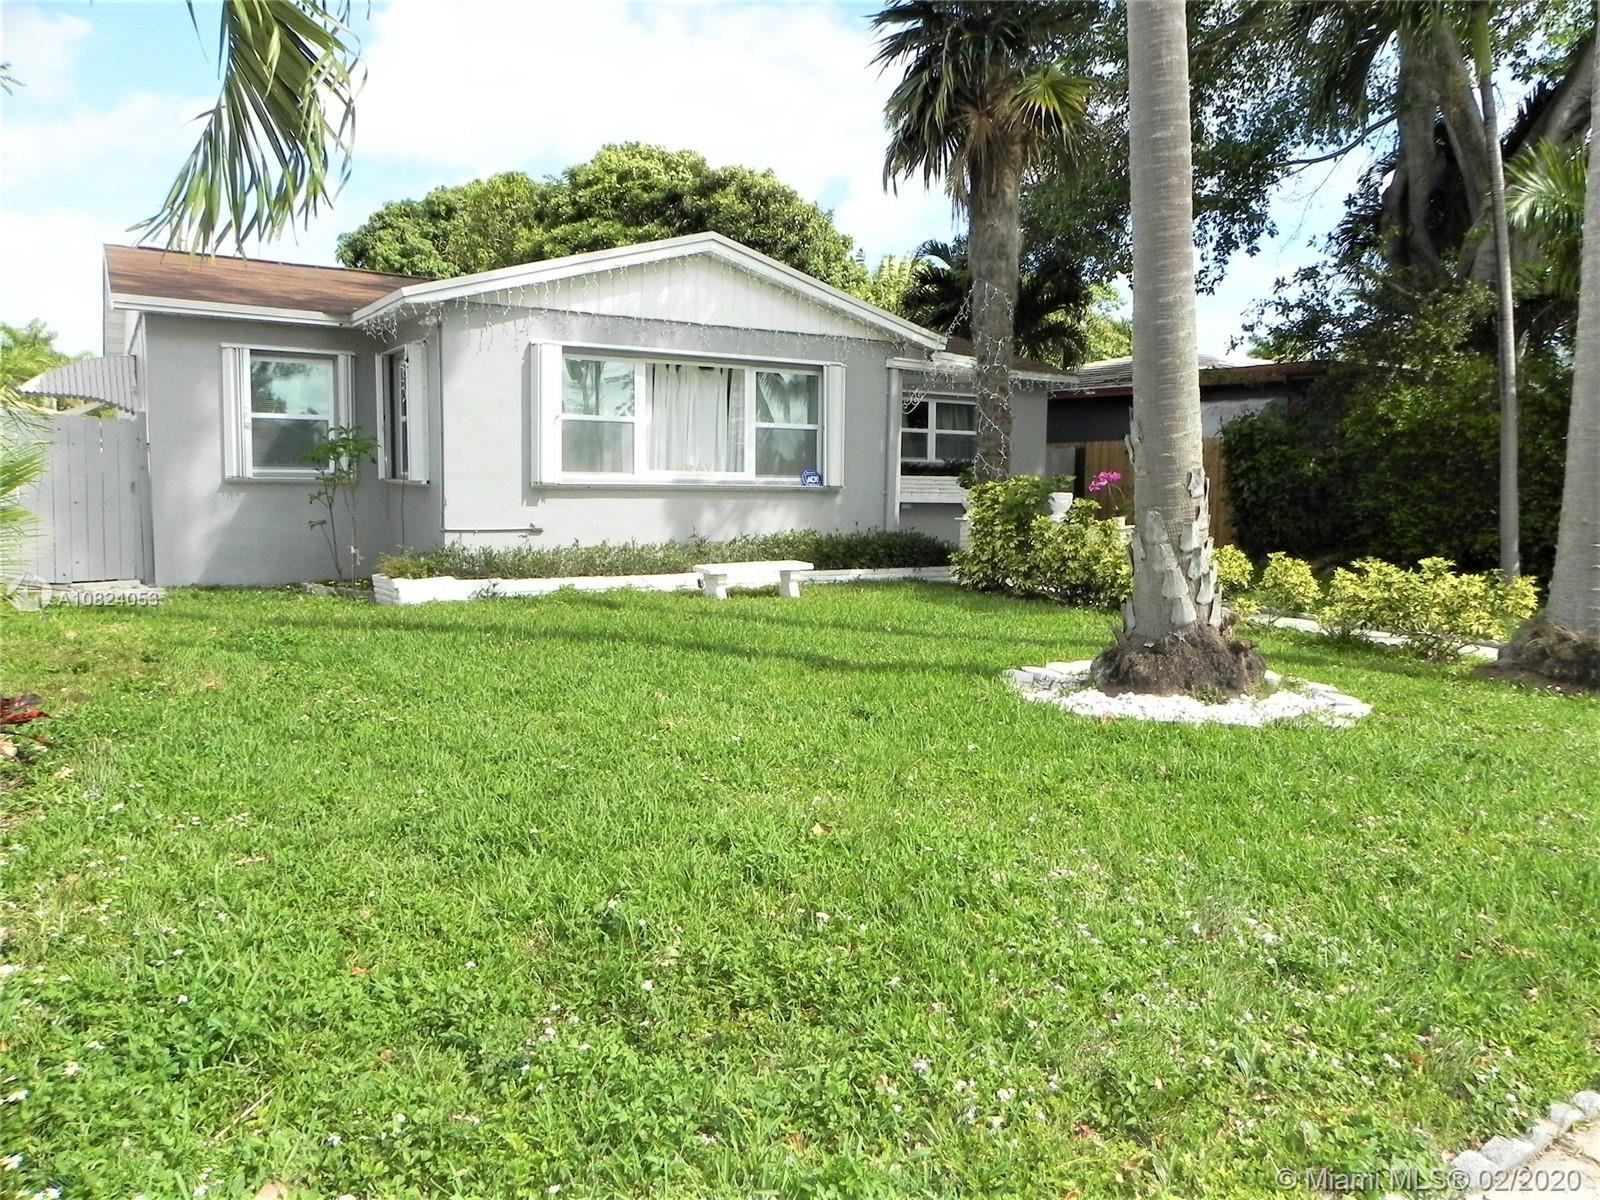 Photo 26 of Listing MLS a10824053 in 1531 Johnson St Hollywood FL 33020